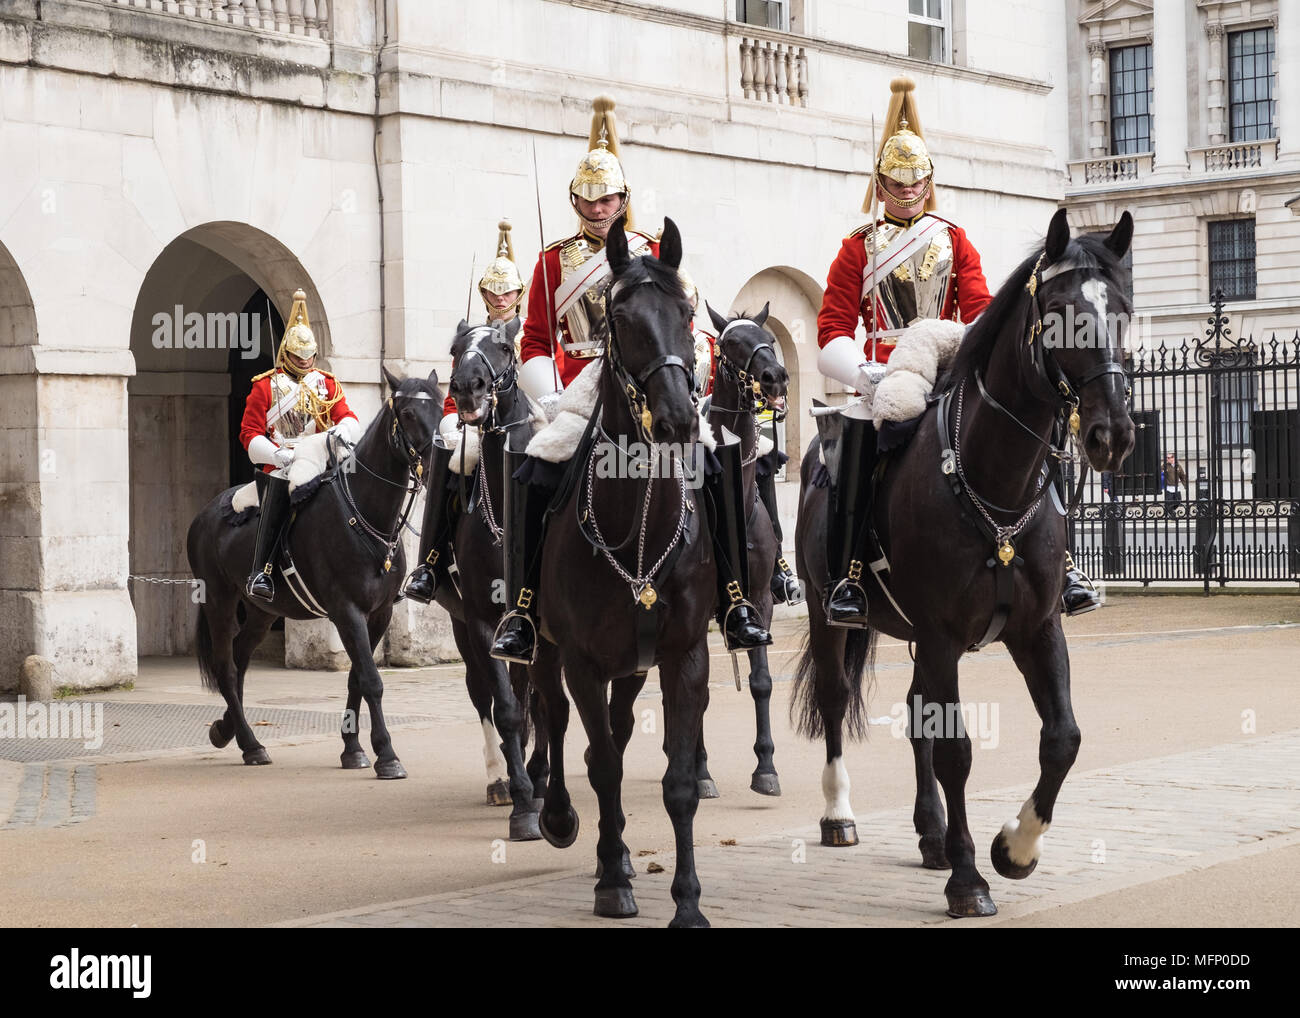 London horseguards, mounted household cavalry also known as lifeguards on black hoses in full dress uniform. - Stock Image